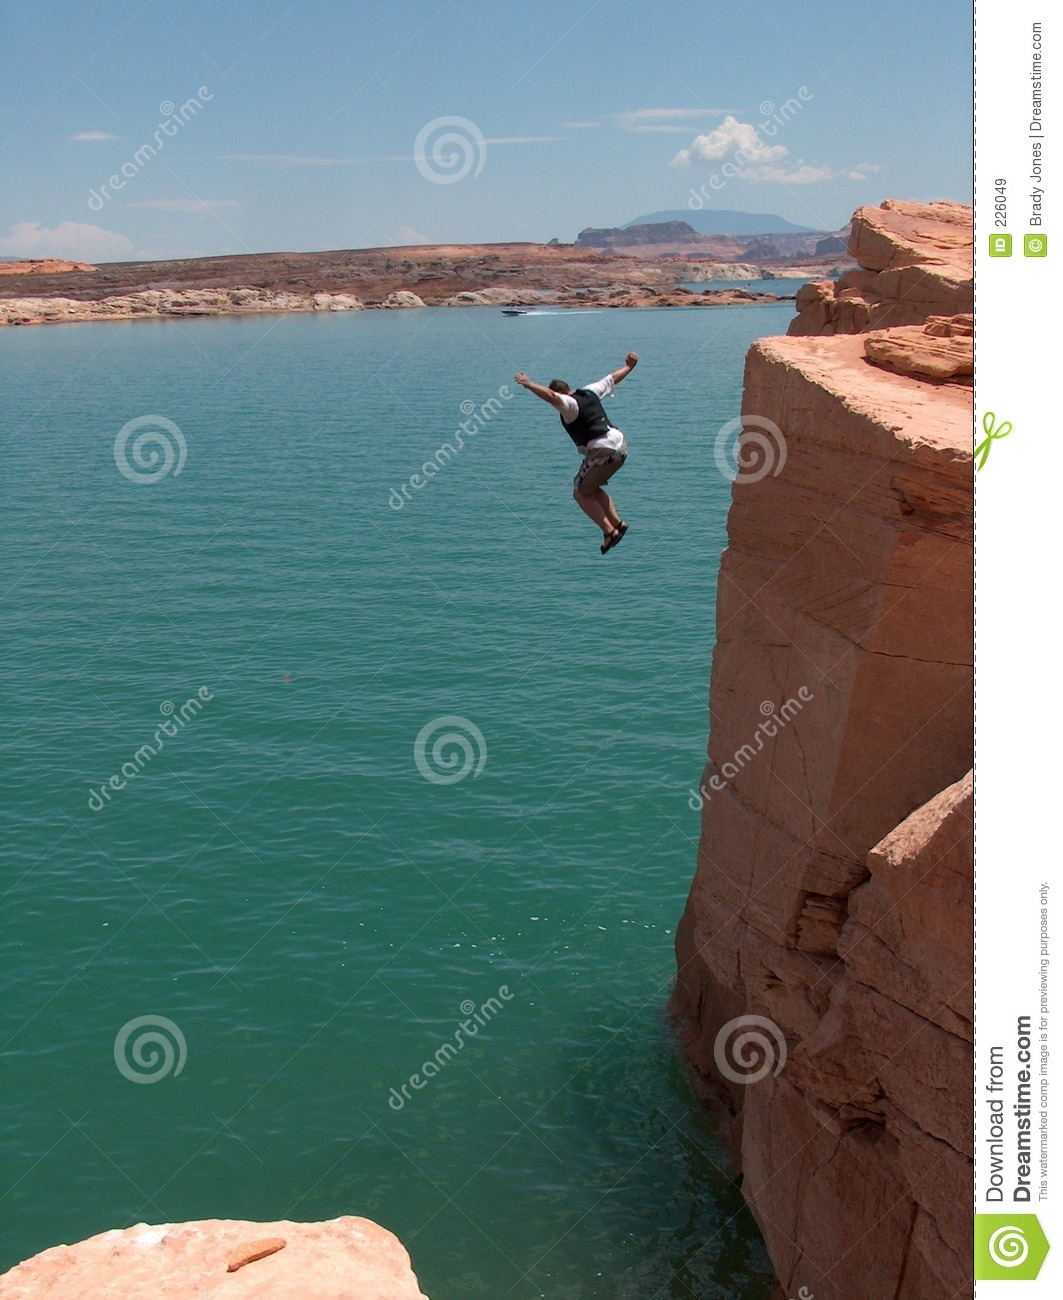 Download The Long Fall stock image. Image of falling, water, rock - 226049